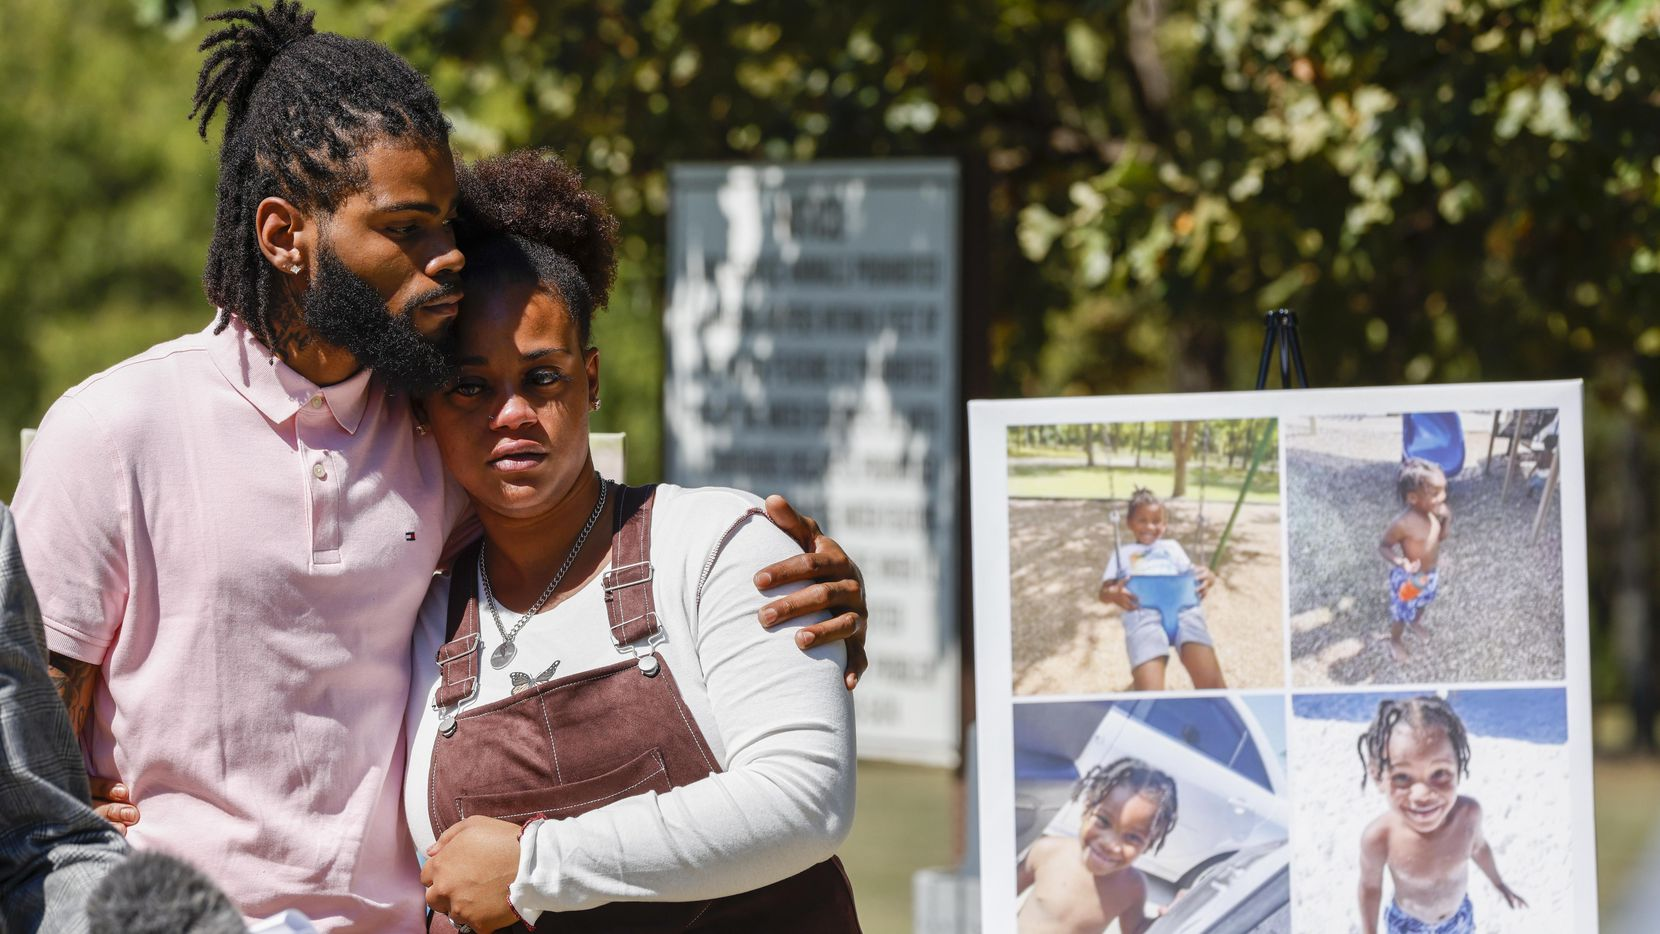 Tariq Williams (left) holds Kayla Mitchell, the parents of Bakari Williams, alongside photos of their son during a press conference at Don Misenhimer Park on Monday, Oct. 4, 2021, in Arlington. Three-year-old Bakari Williams died after contracting an amoeba from a city of Arlington splash pad. The family filed a lawsuit Monday morning against the city of Arlington for negligence. (Elias Valverde II/The Dallas Morning News)